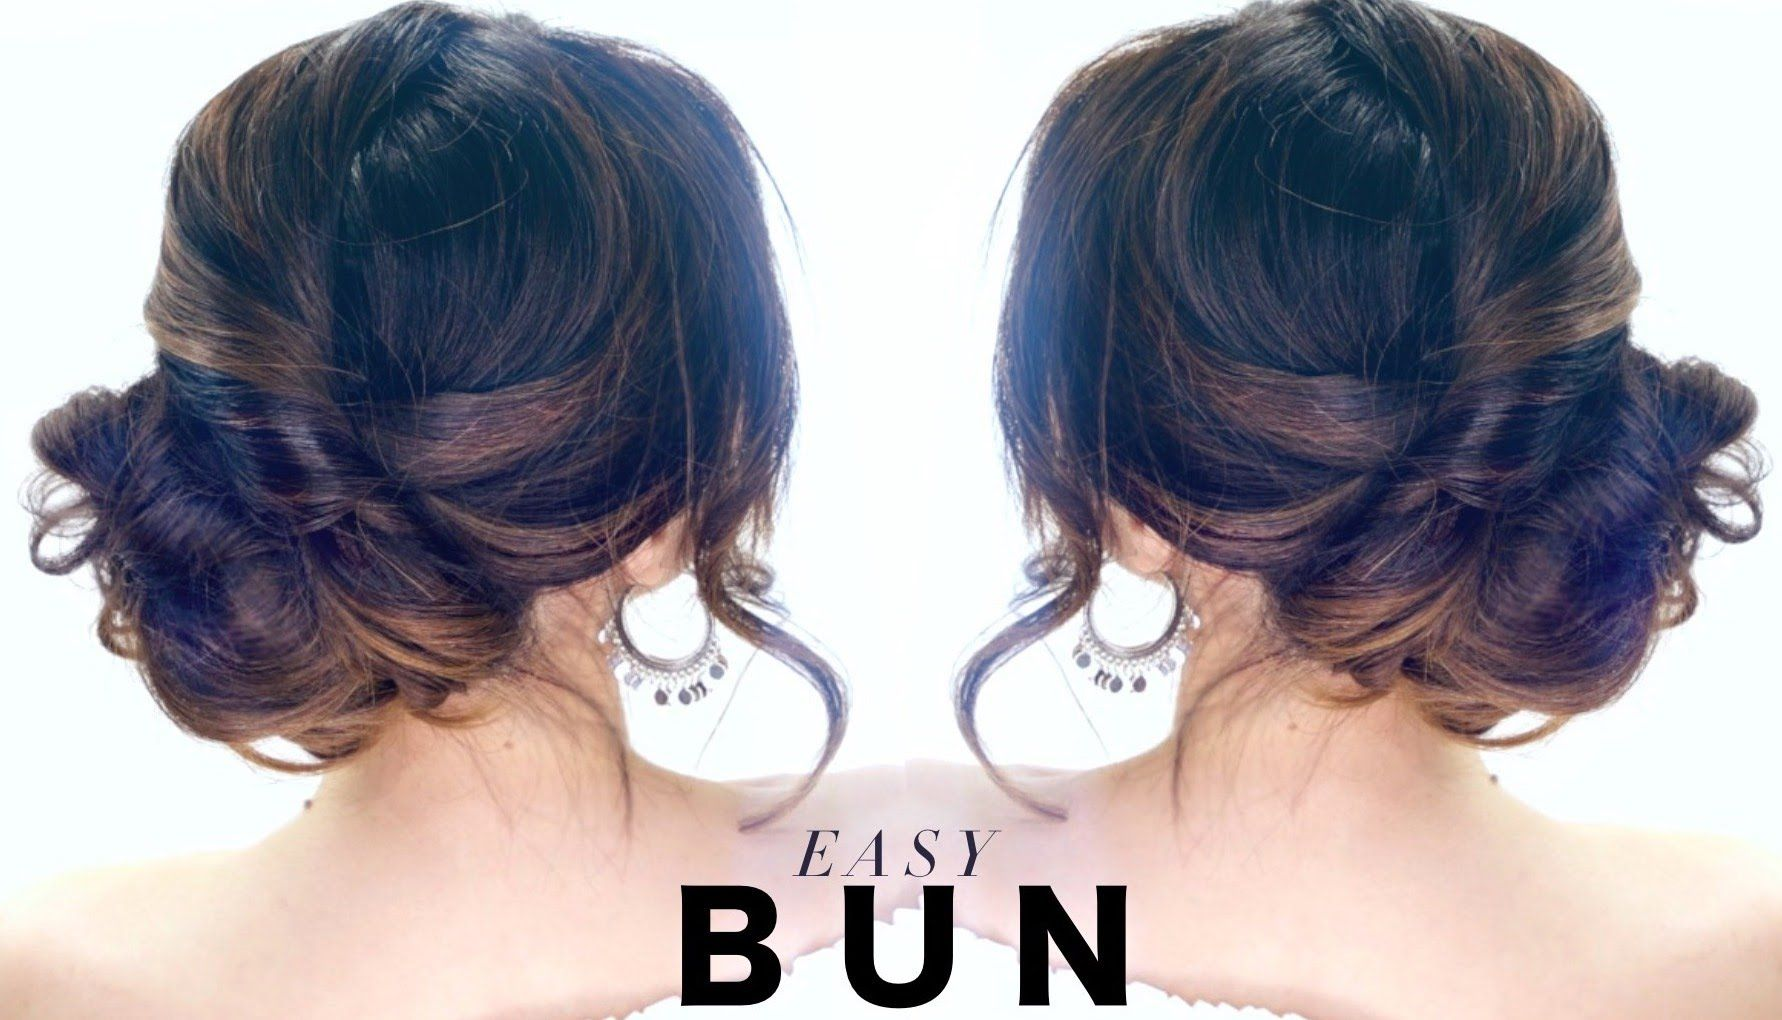 Minute elegant side bun hairstyle cute u easy updo fashion isn